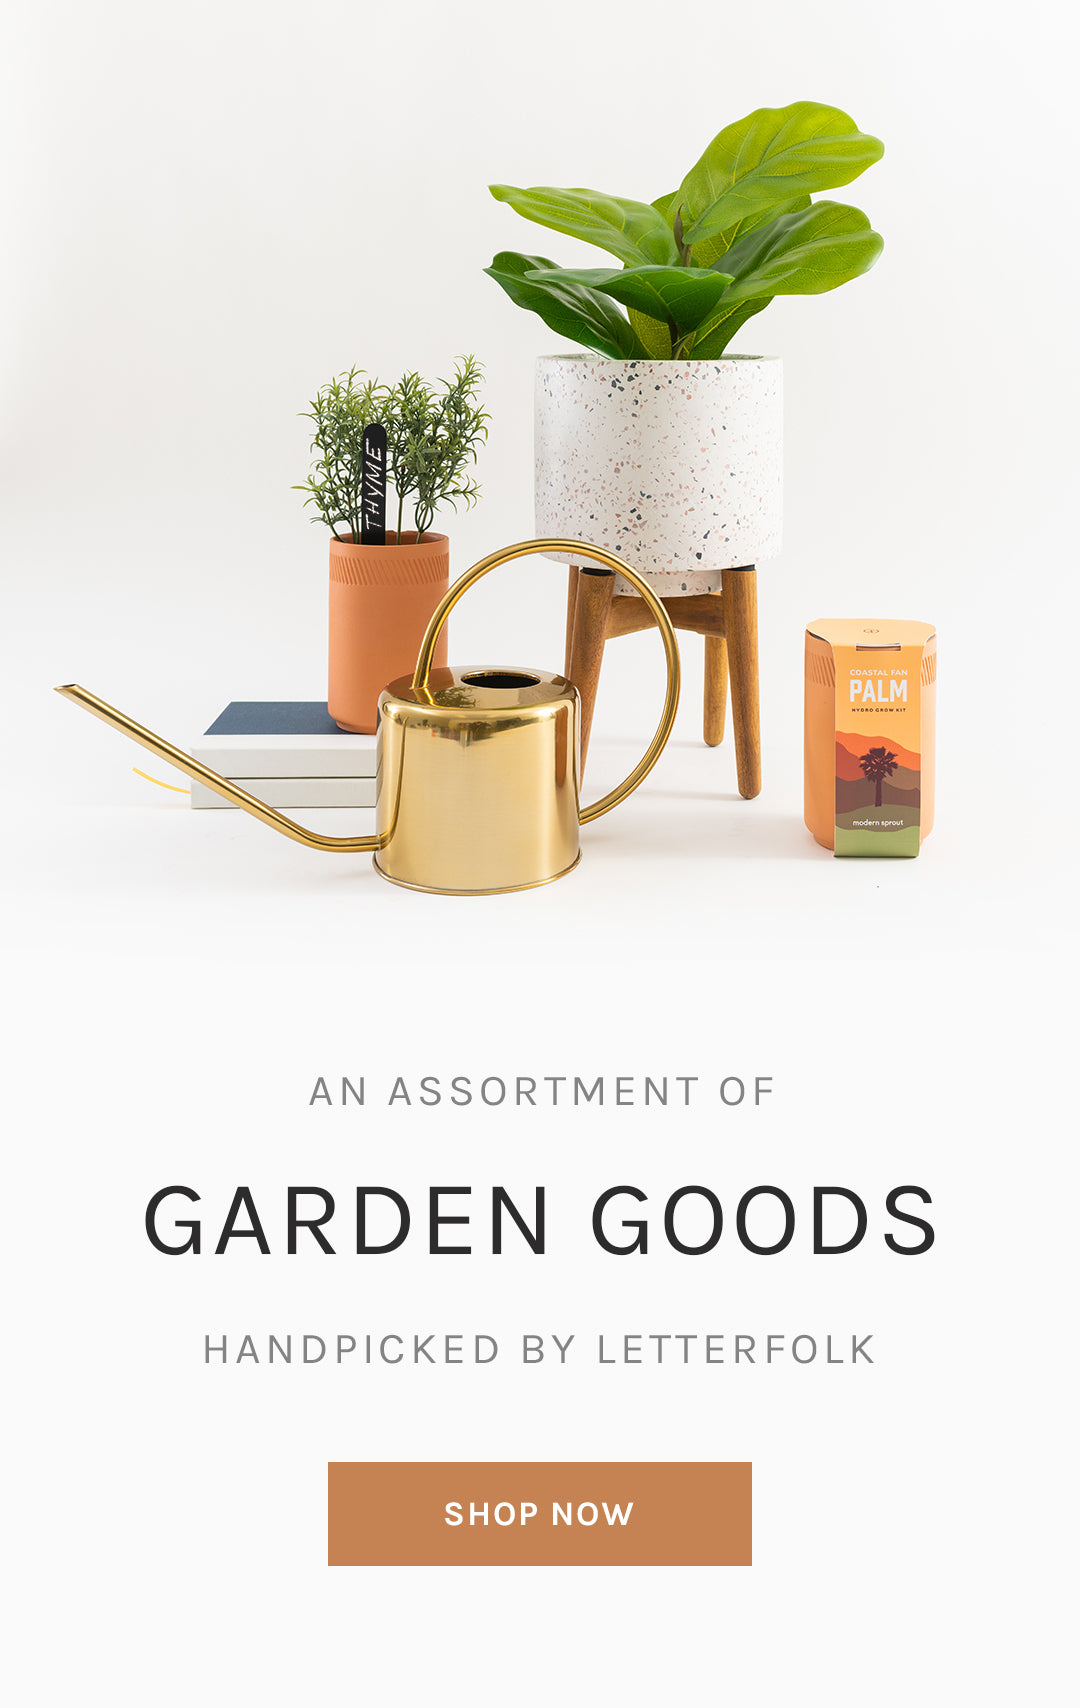 An Assortment of Garden Goods Handpicked by Letterfolk